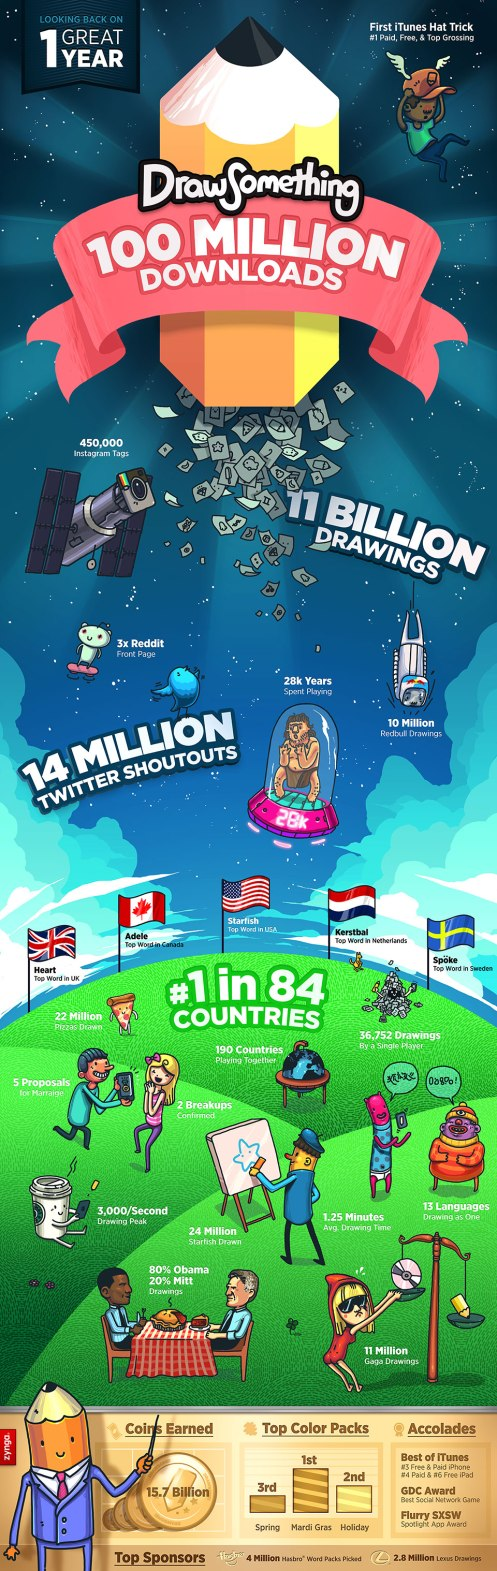 Draw Something Infographic_Final